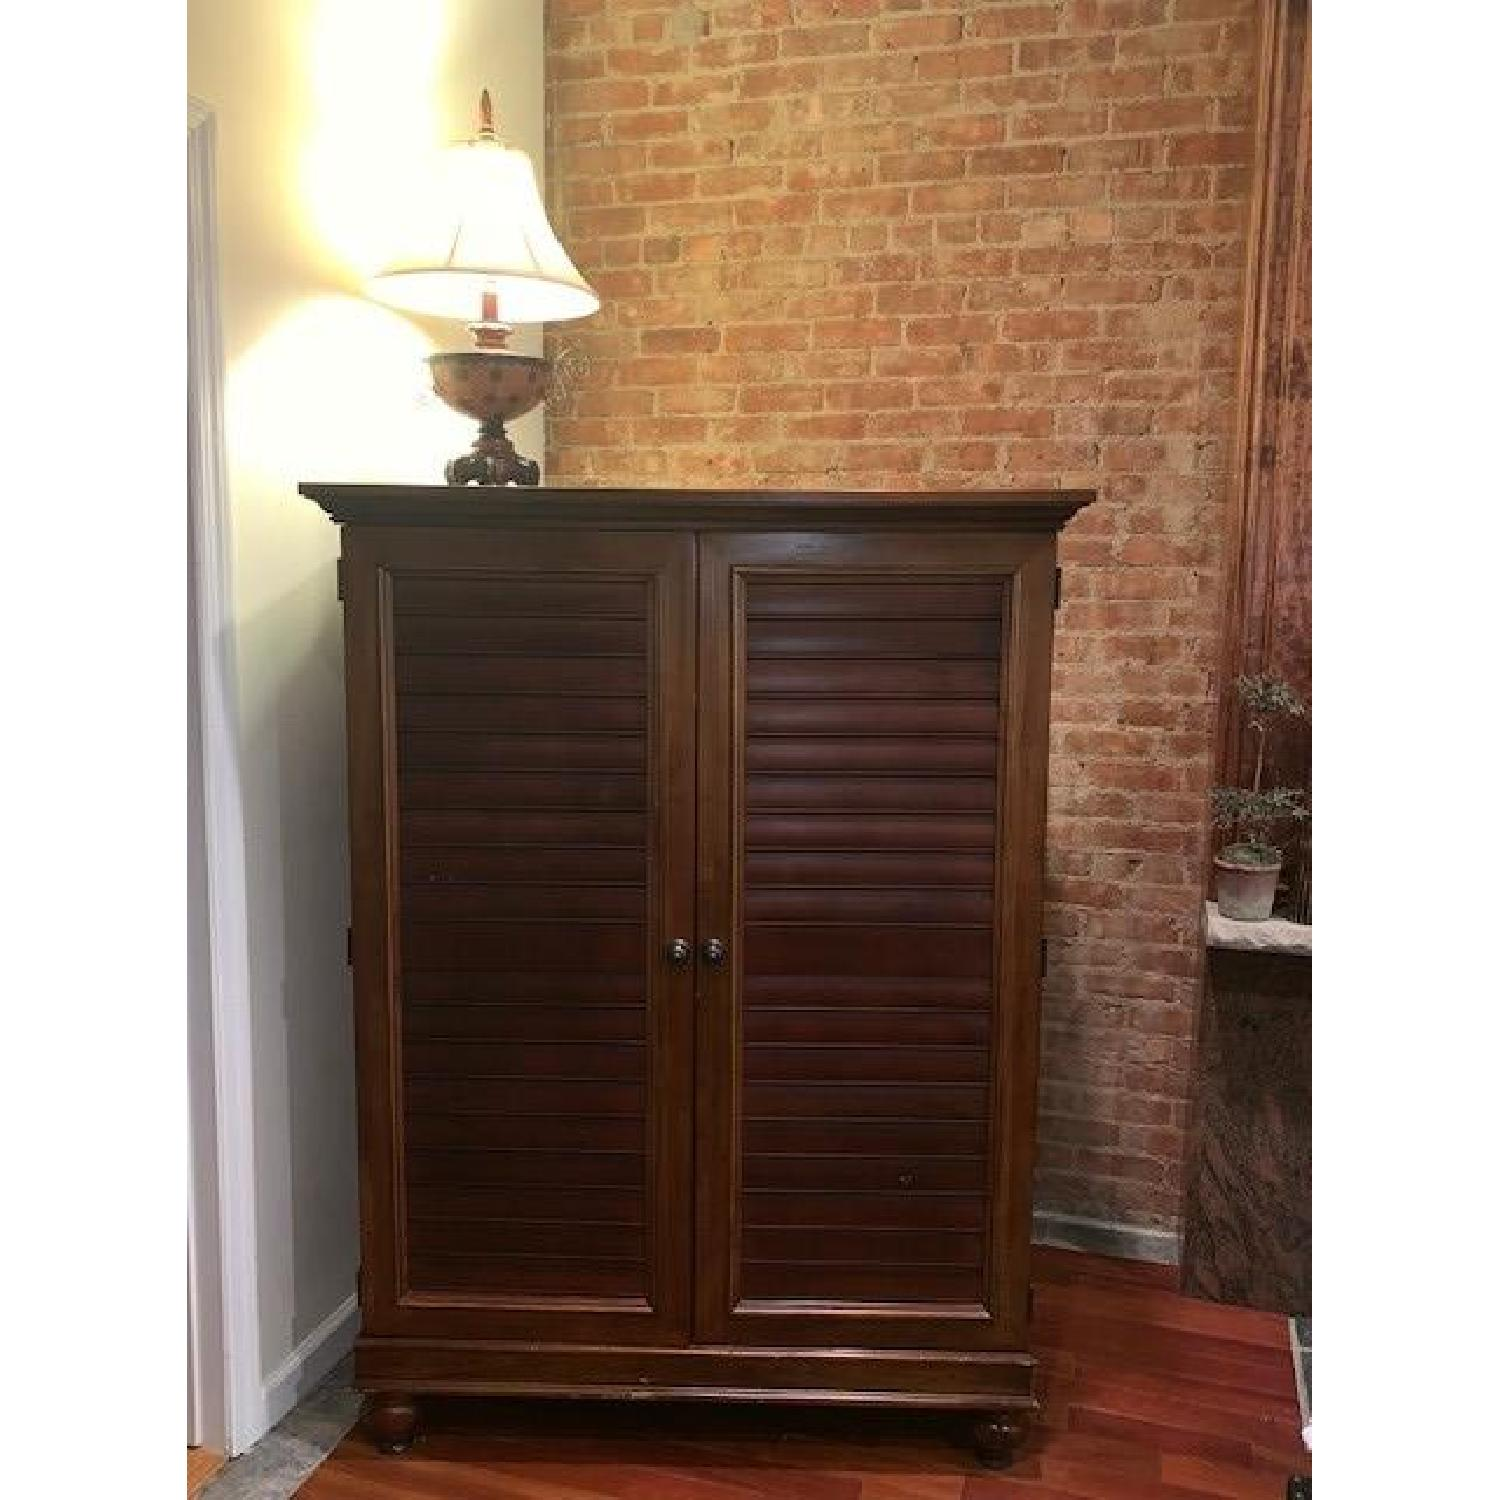 Hooker Furniture Media Cabinet/Armoire in Mahogany Finish - image-1